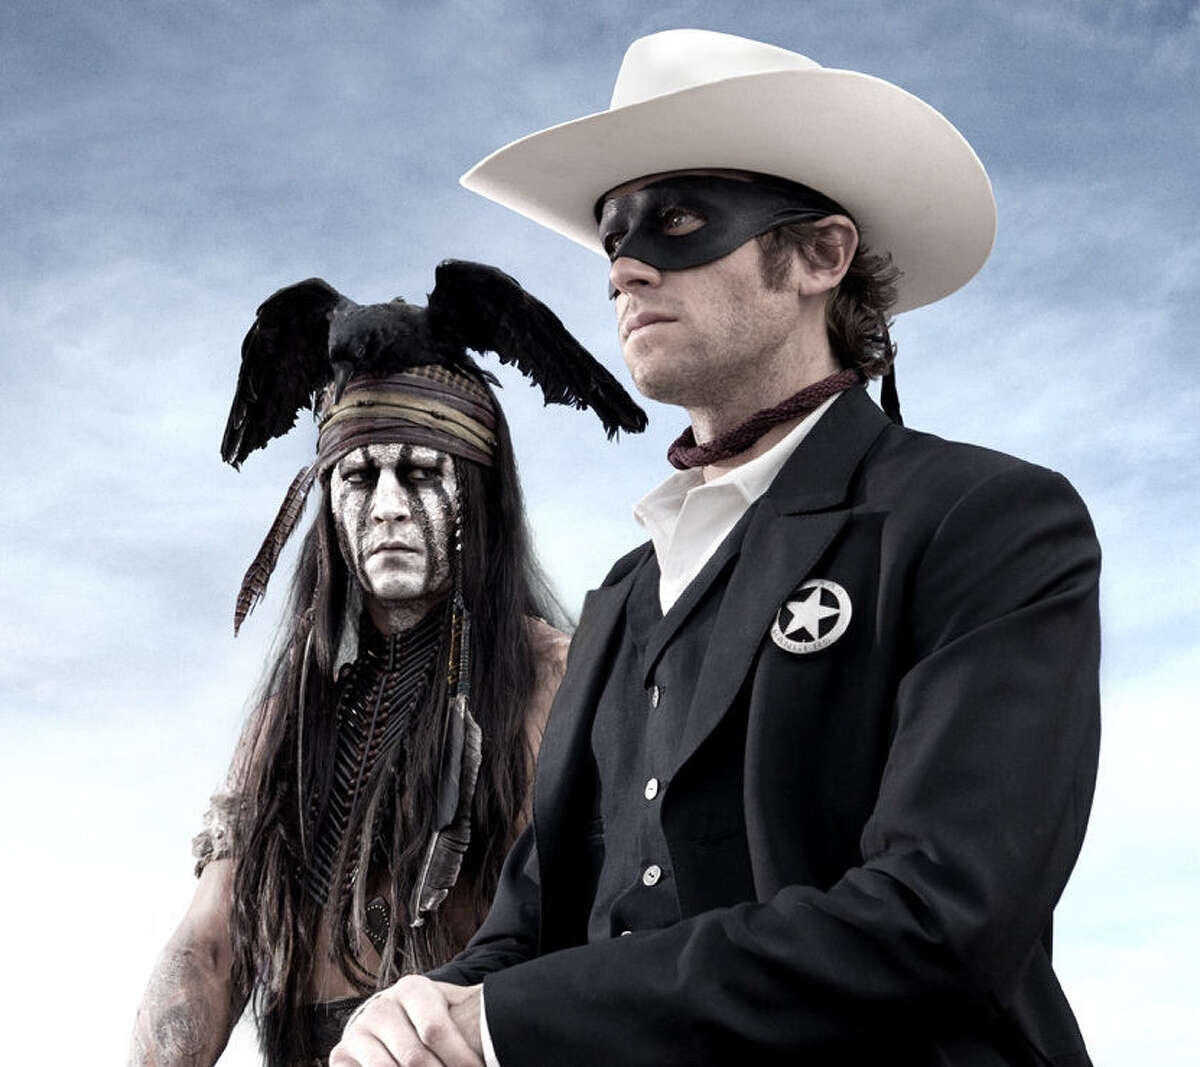 Worst picture nominee: 'The Lone Ranger' Tonto (Johnny Depp, left) had no apparent friendship with The Lone Ranger (Armie Hammer), one of many strikes against